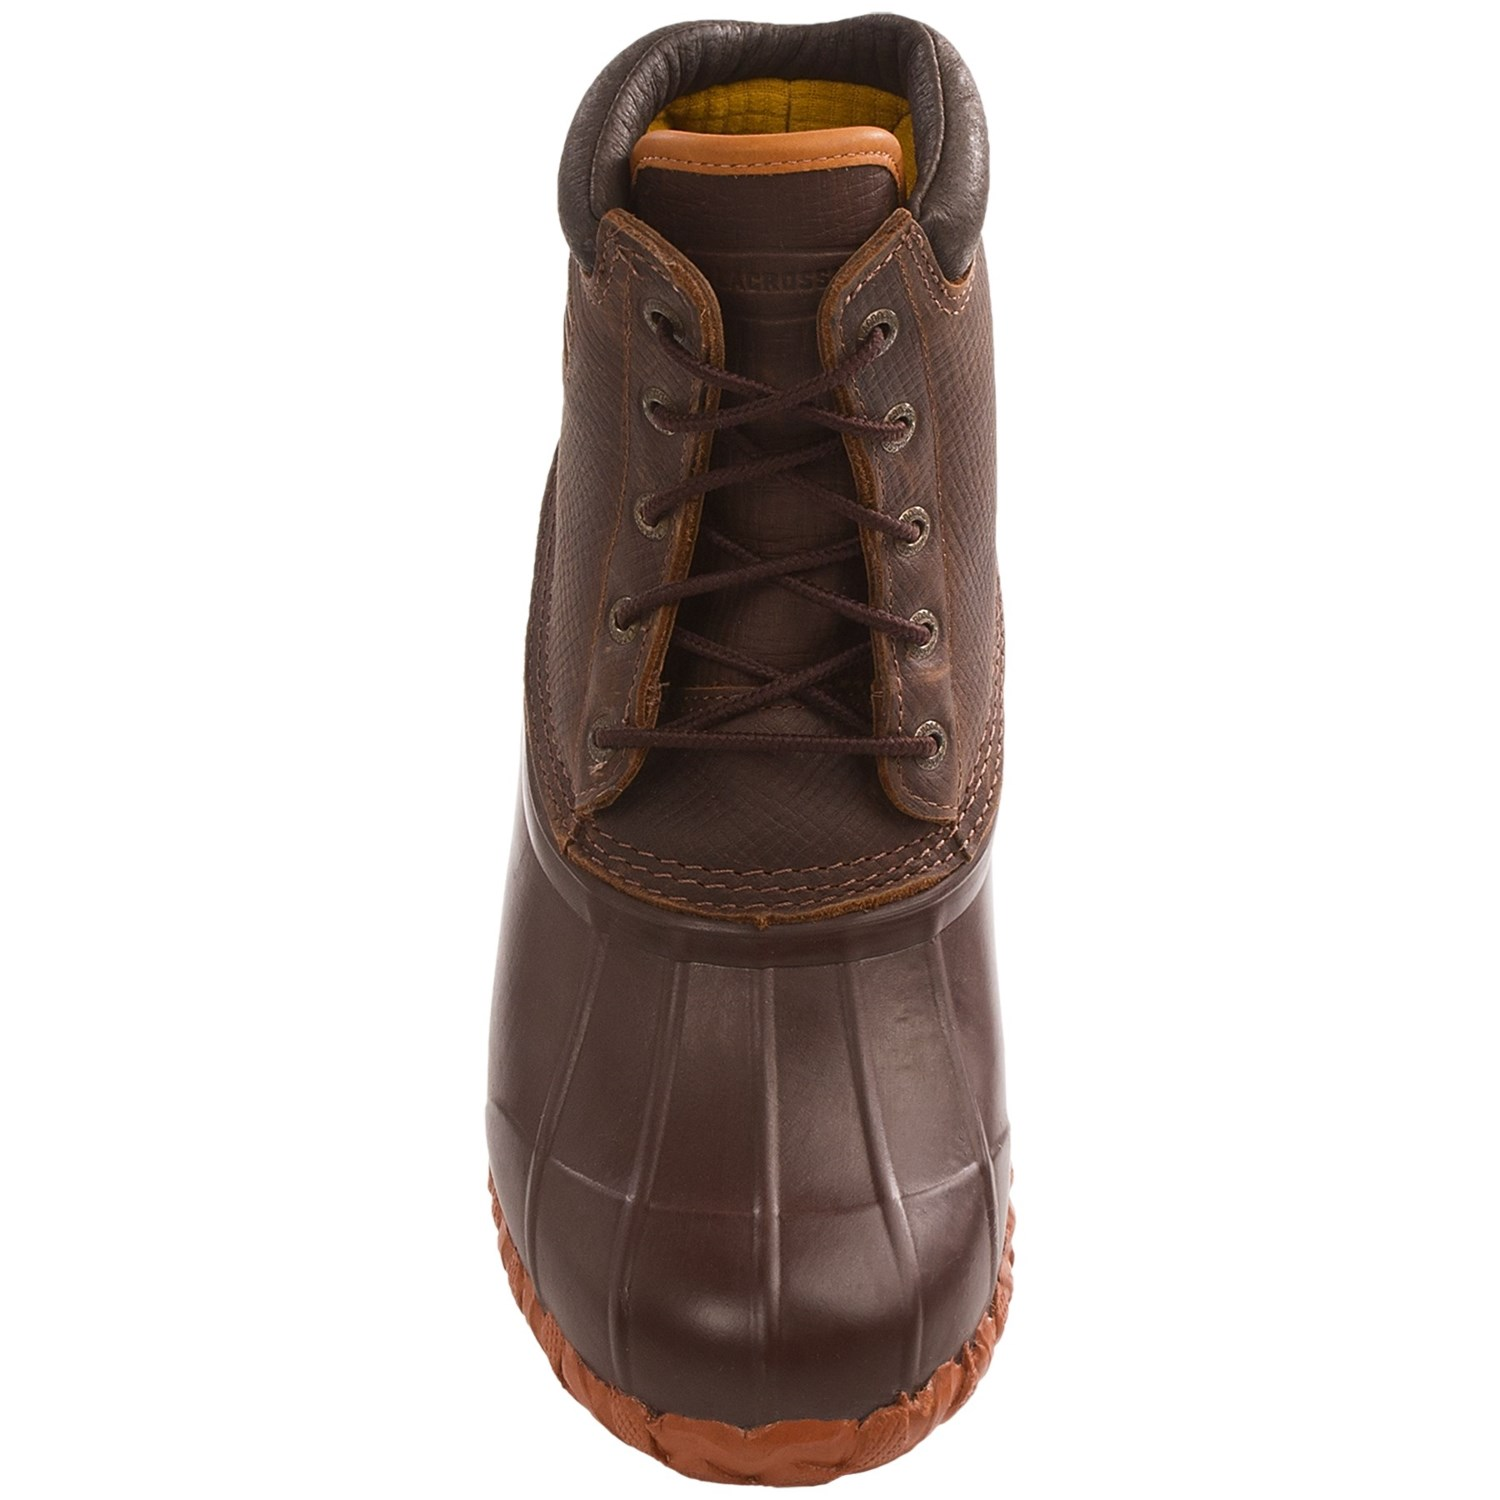 Creative Womenu0026#39;s Merrell Decora Prelude Waterproof Boots - 617471 Winter U0026 Snow Boots At Sportsmanu0026#39;s Guide